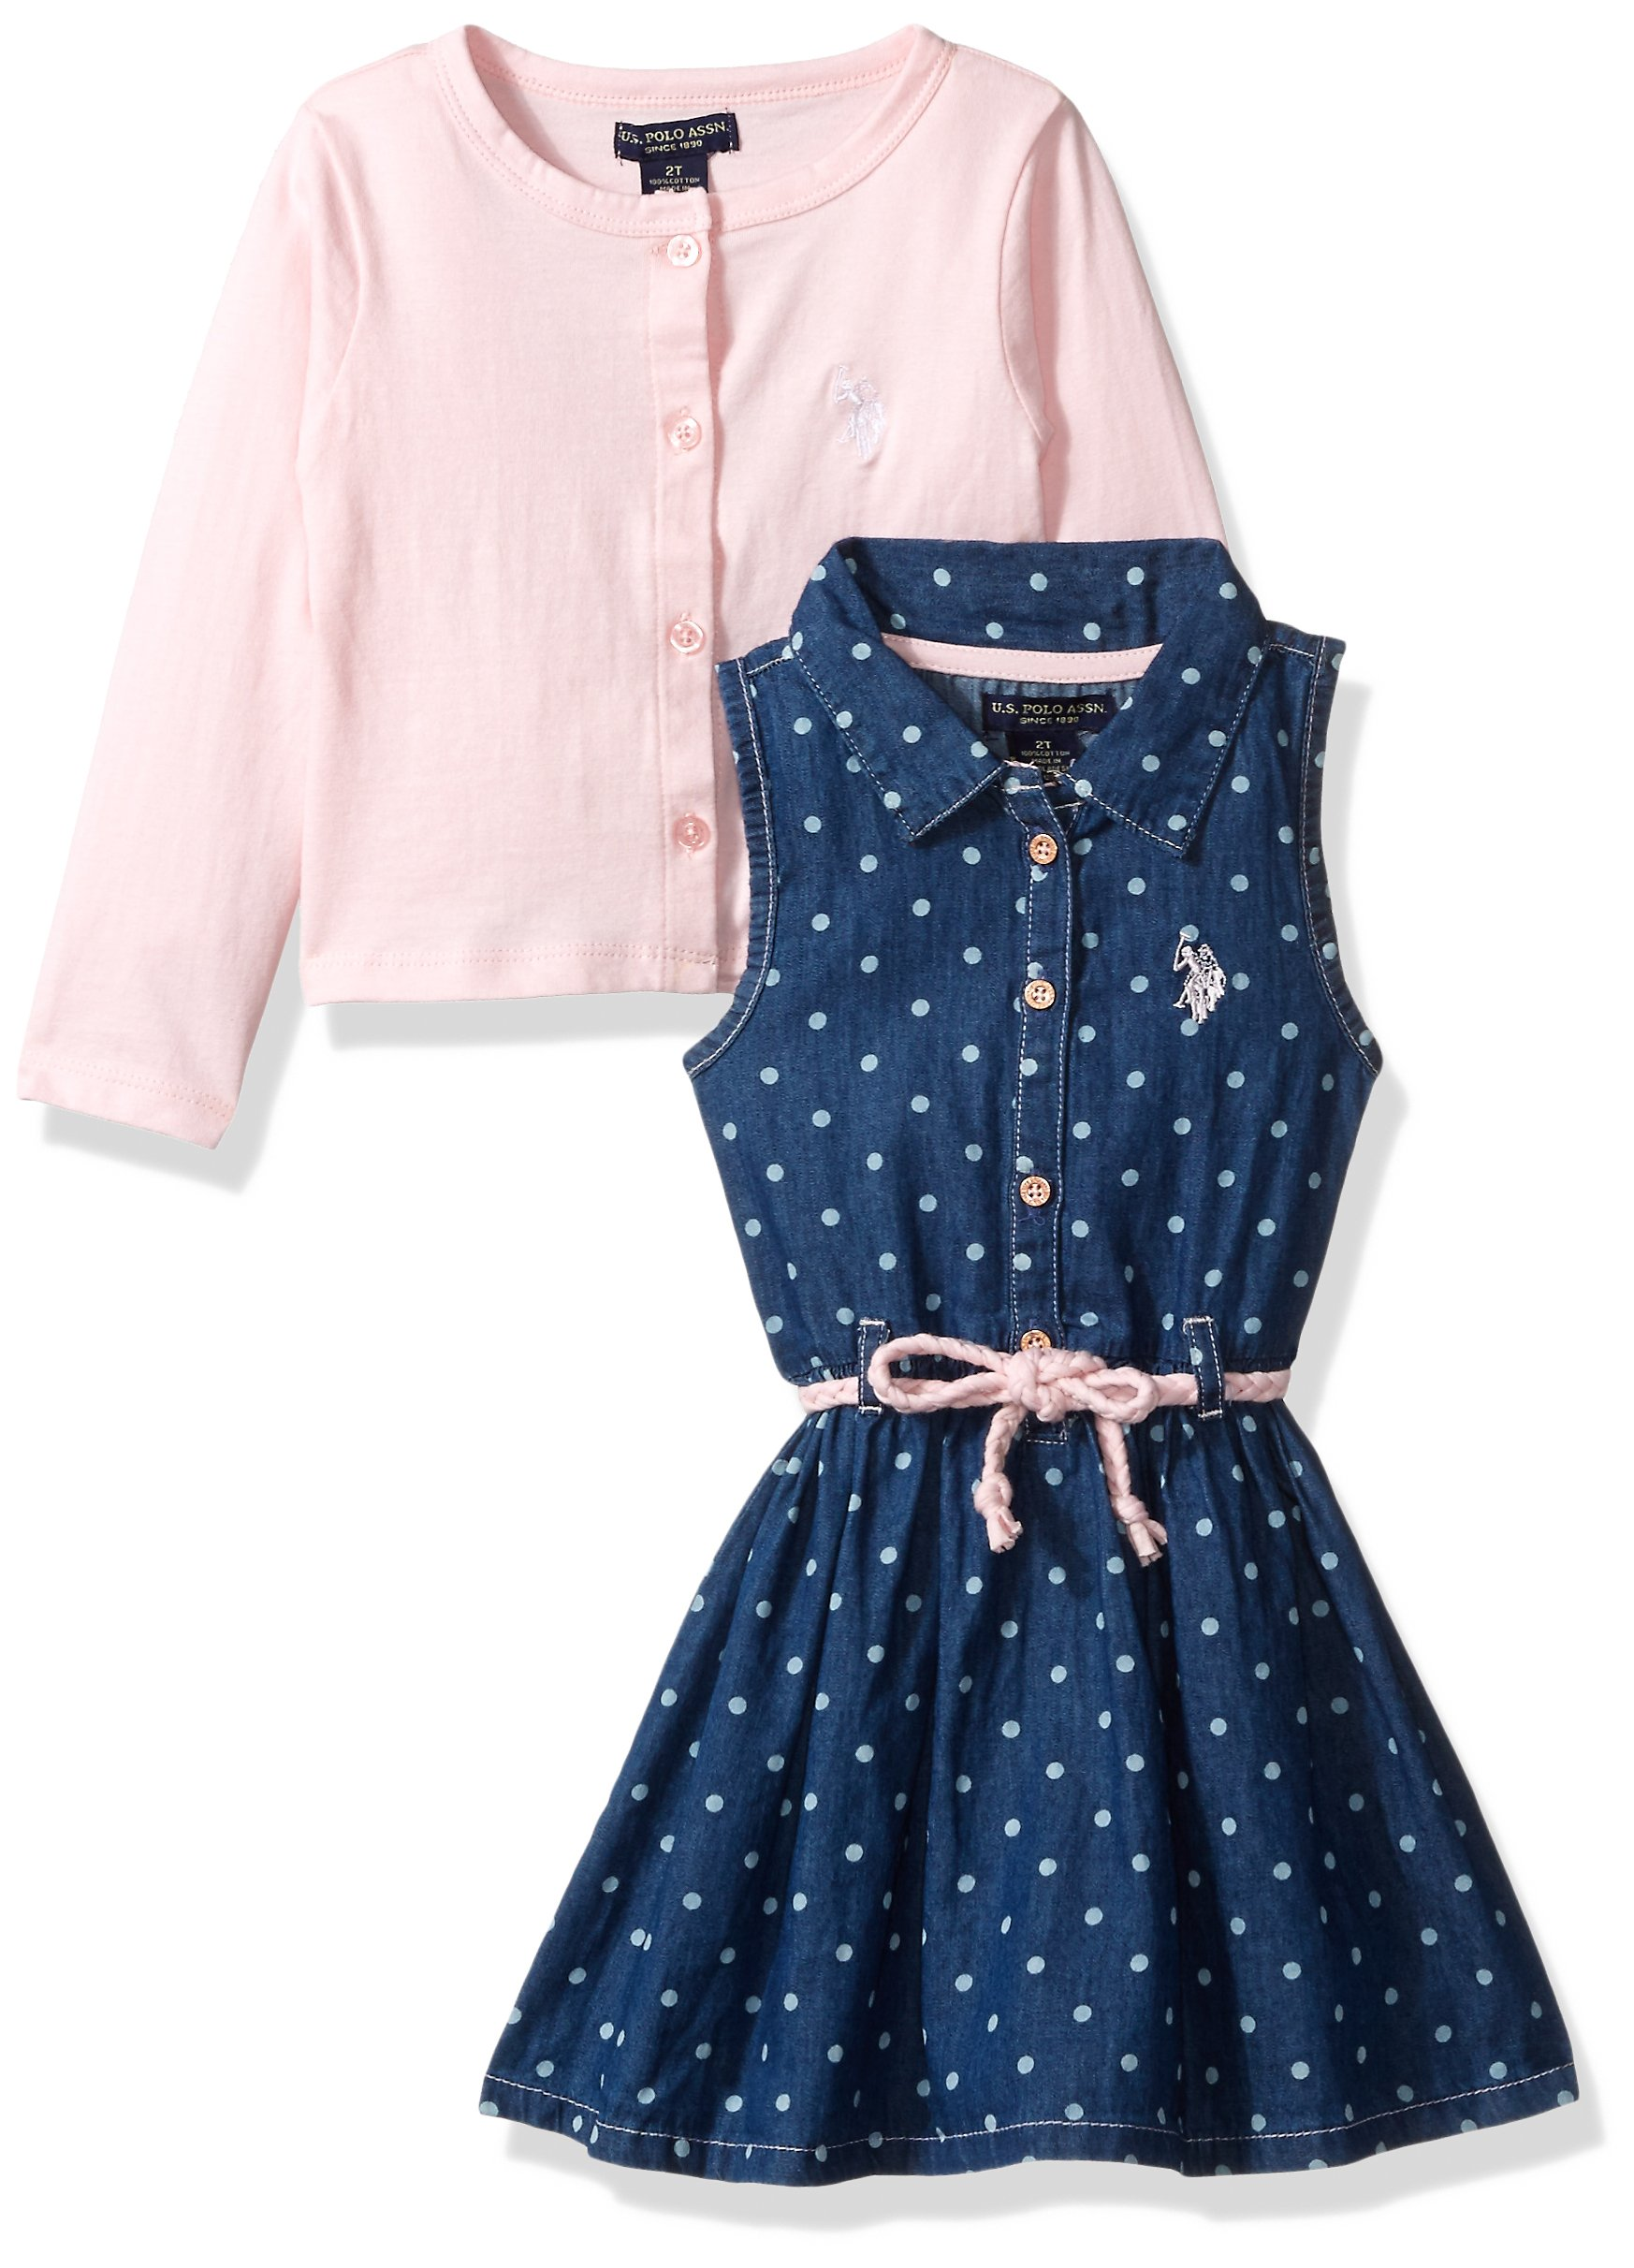 U.S. Polo Assn. Toddler Girls' Dress with Sweater Jacket, Denim Polka Dots Rose Shadow, 4T by U.S. Polo Assn.